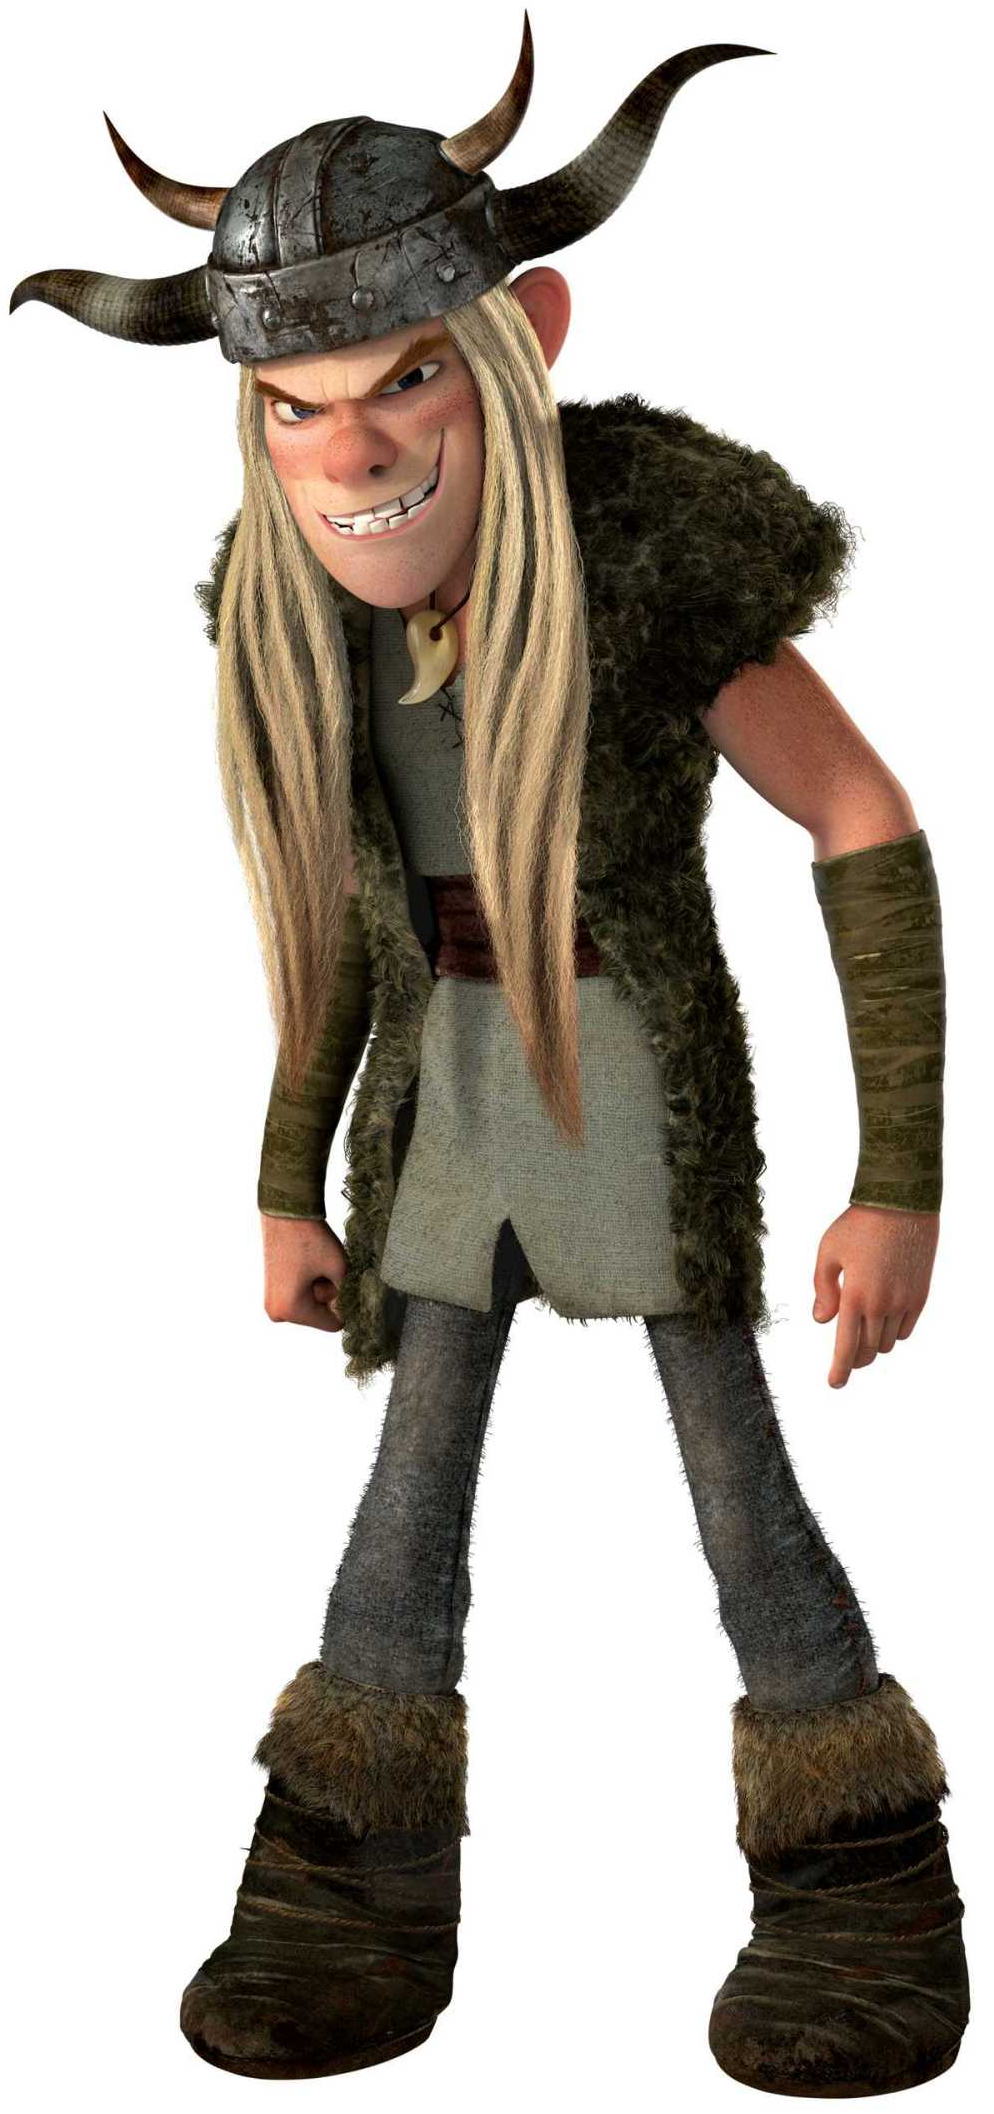 Image tuffnut thorstong how to train your dragon wiki tuffnut thorstong ccuart Images